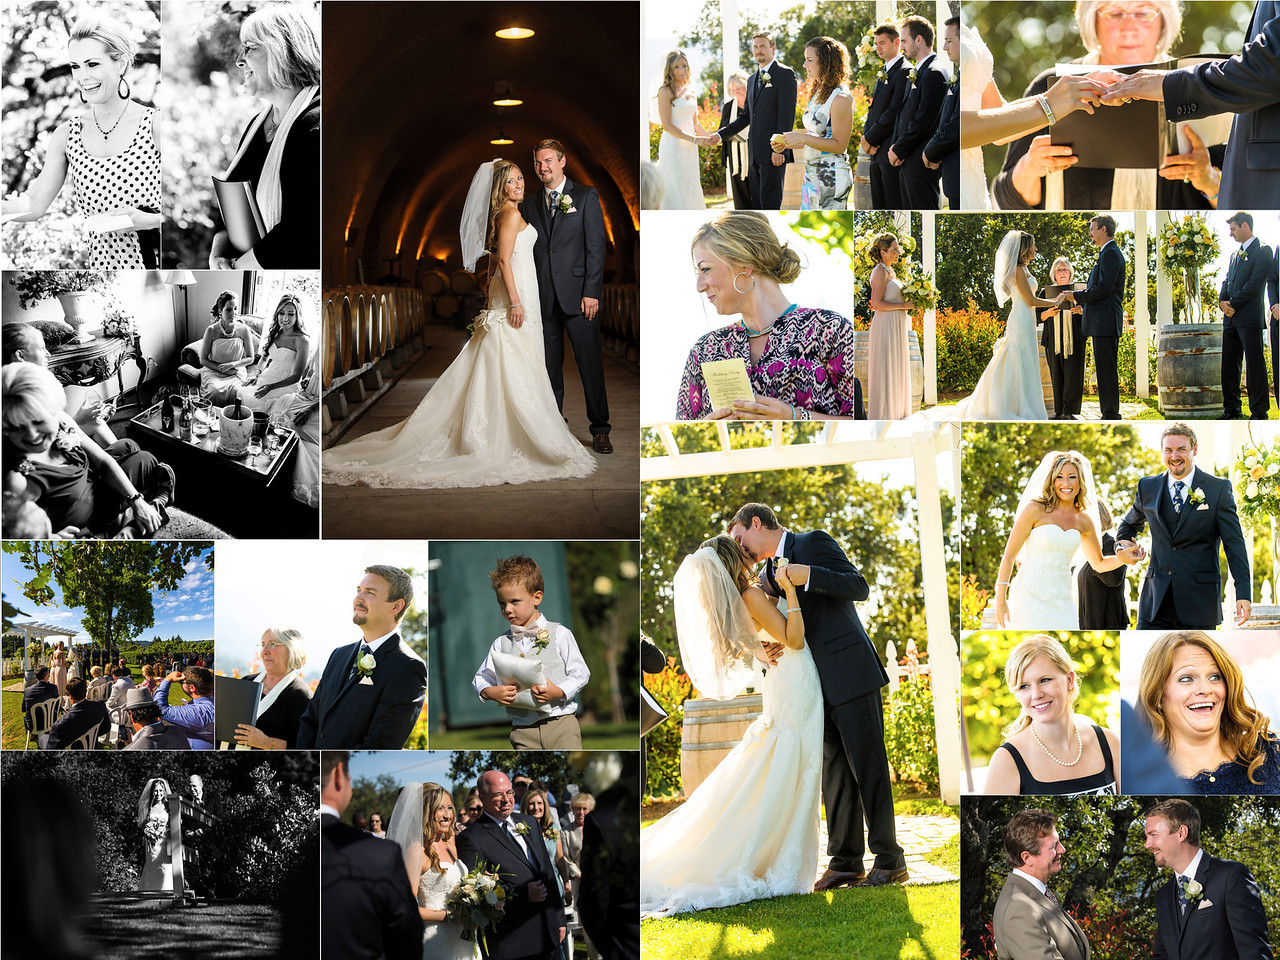 Erica_and_Justin_Byington_Winery_Los_Gatos_Wedding_Photography_4x6_Photo_Board_05